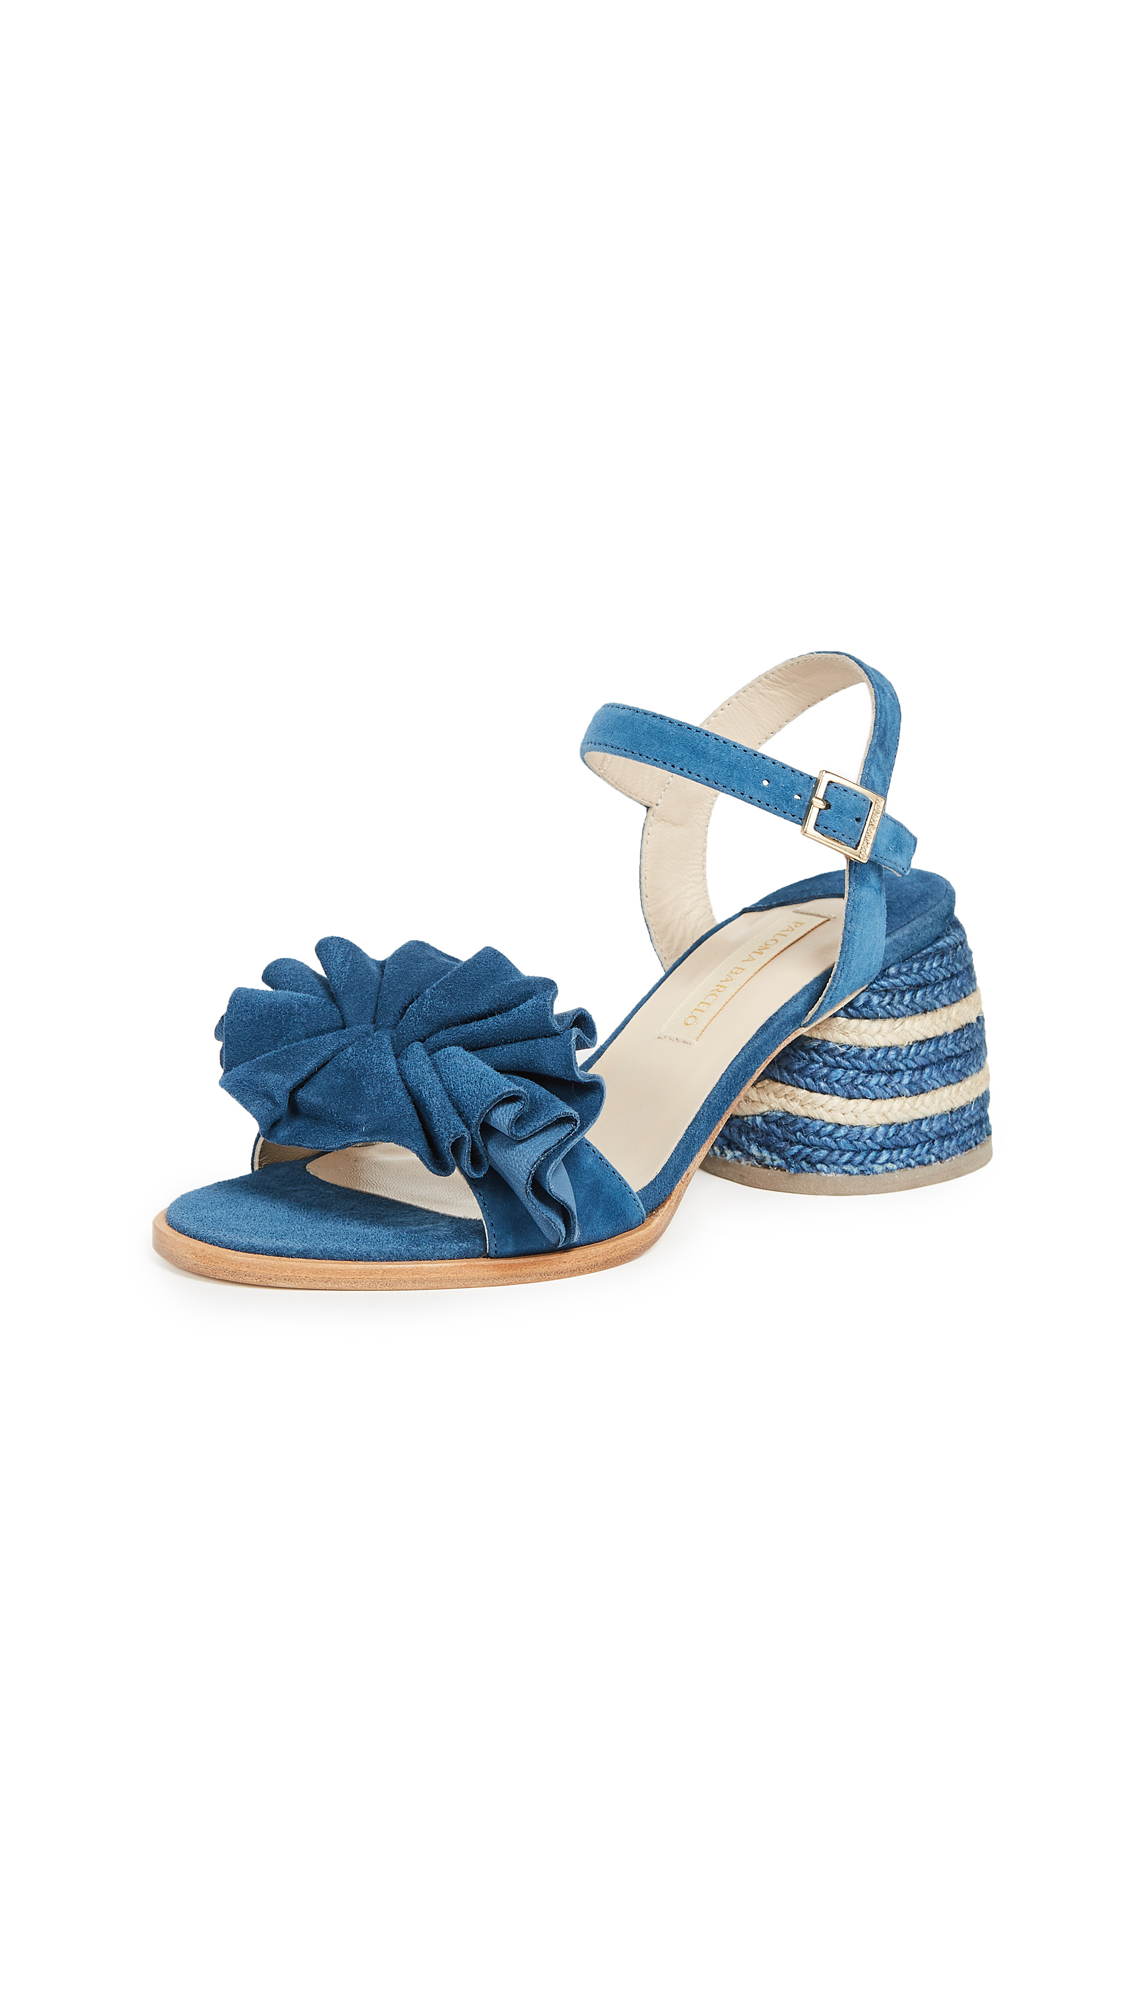 Paloma Barcelo Acacia Sandals - Blue